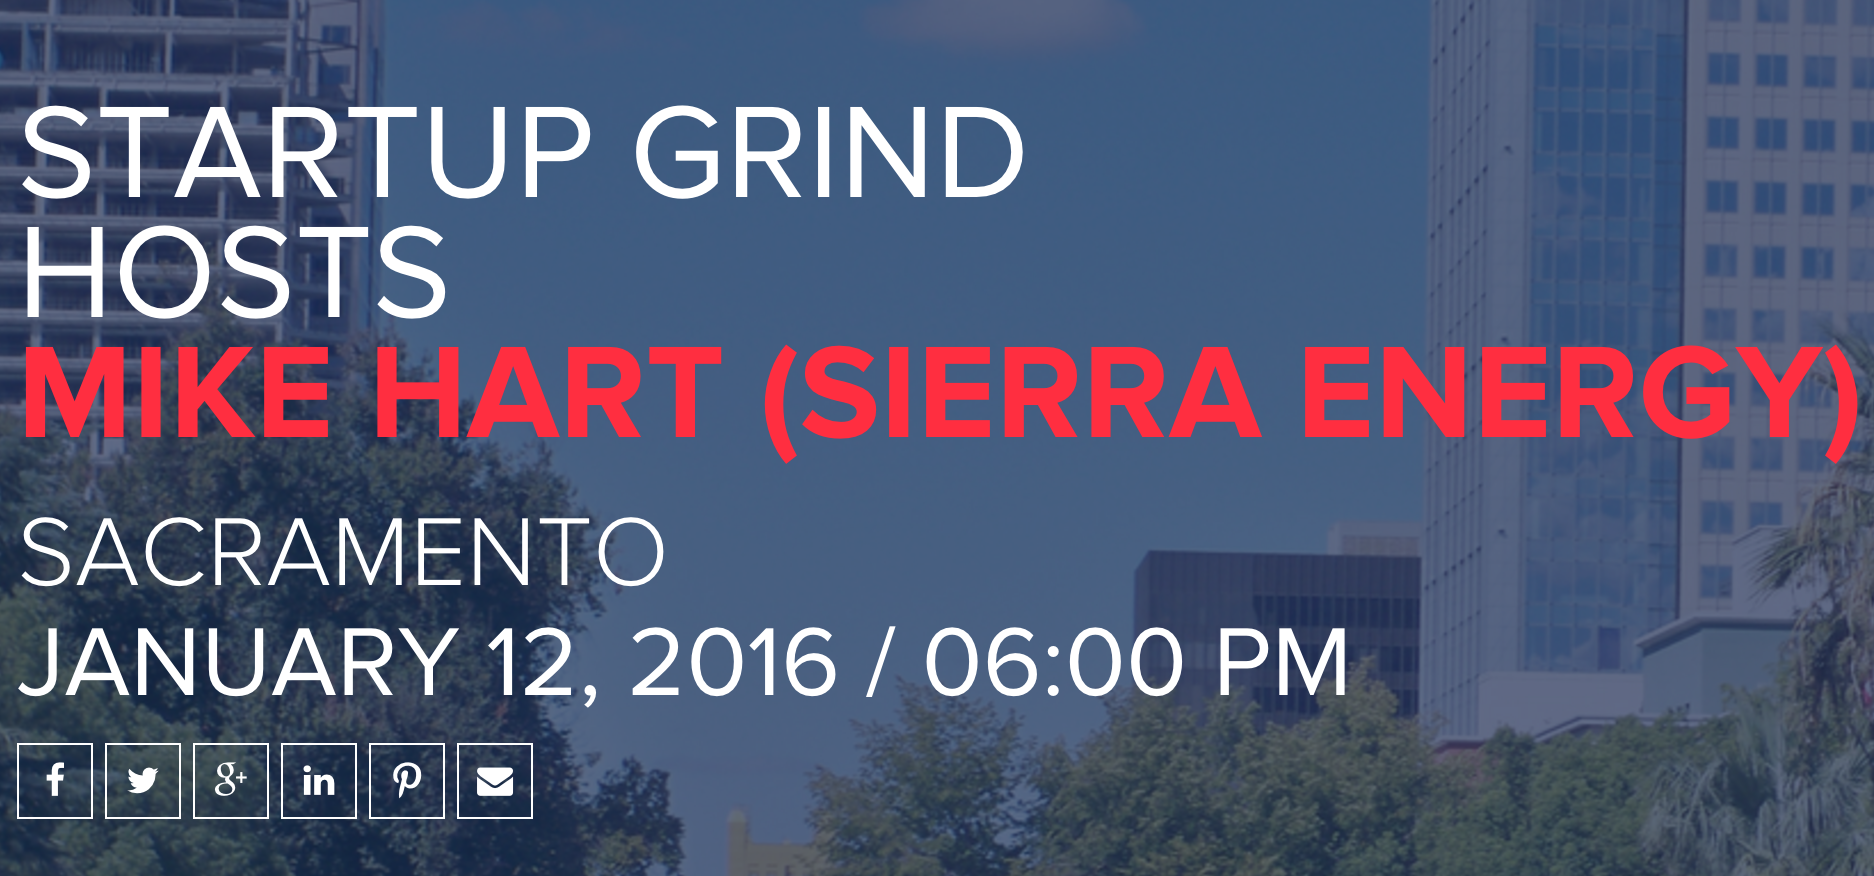 Startup Grind Hosts Mike Hart on January 12